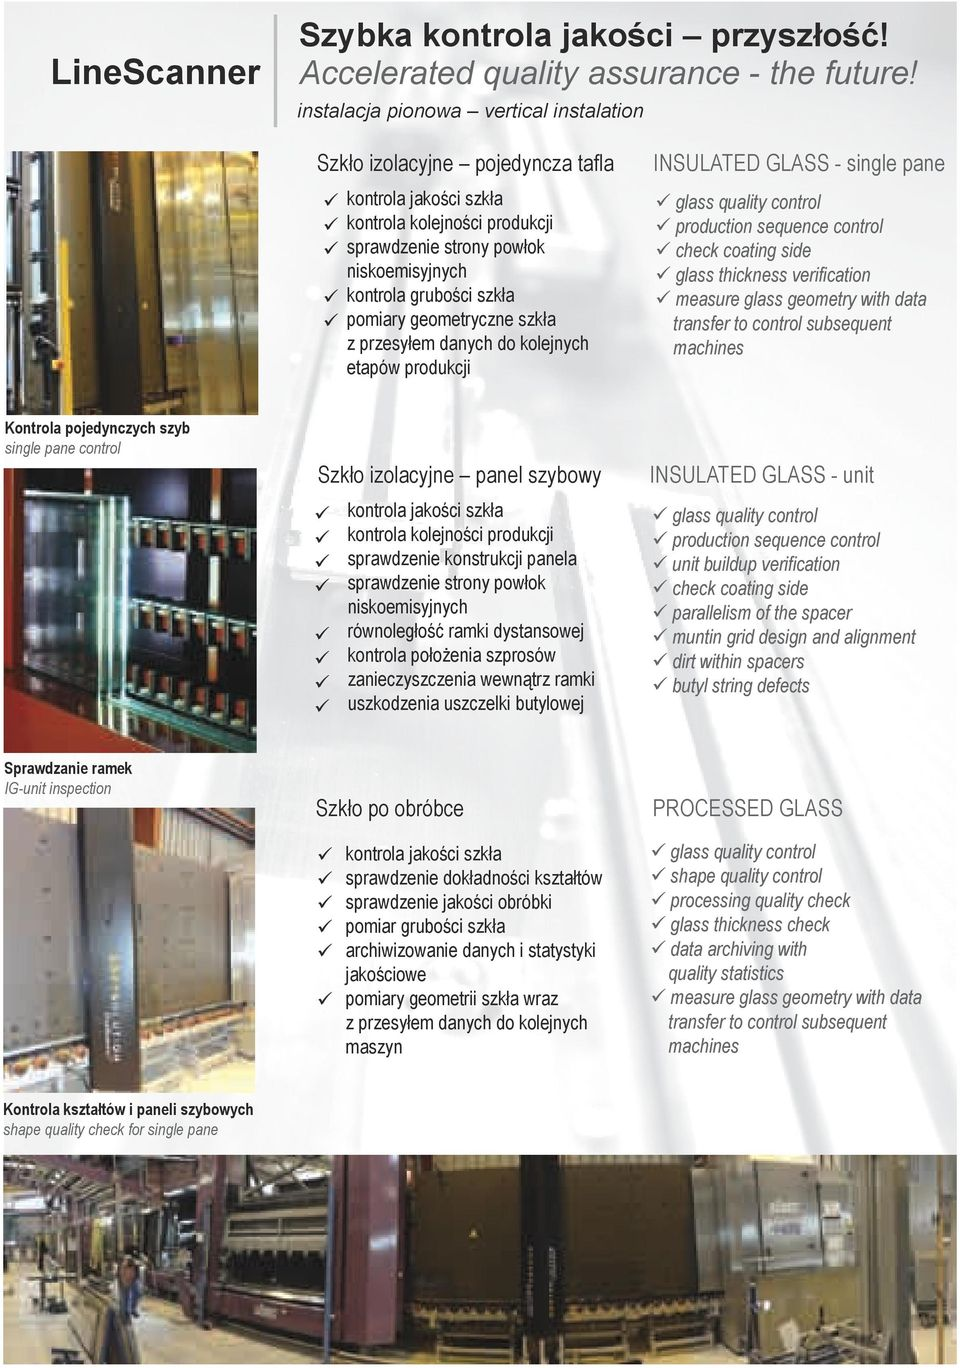 pomiary geometryczne szkła z przesyłem danych do kolejnych etapów produkcji INSULATED GLASS - single pane glass quality control production sequence control check coating side glass thickness